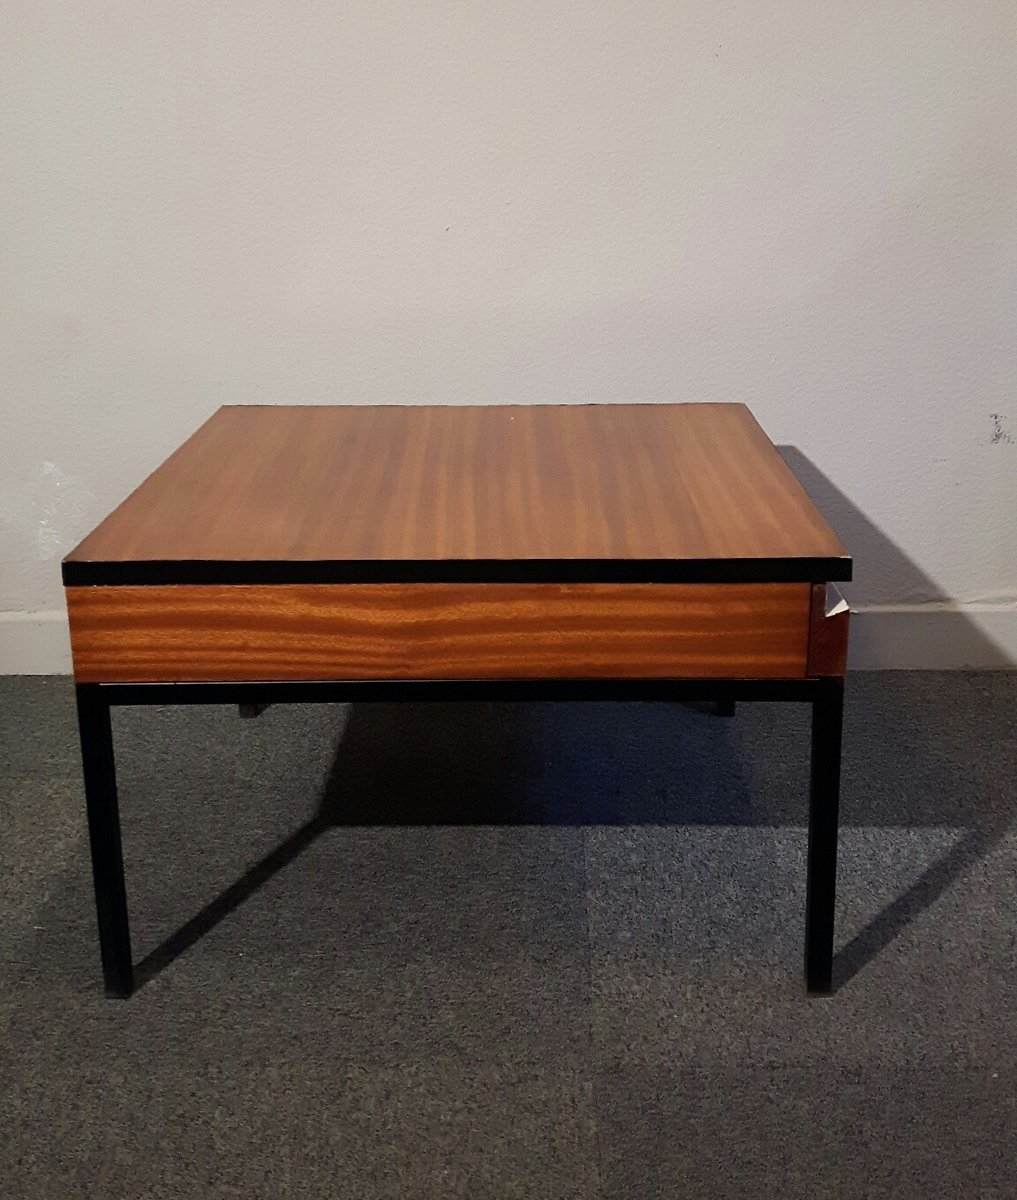 Coffee Table 1950s: Coffee Table, 1950s For Sale At Pamono